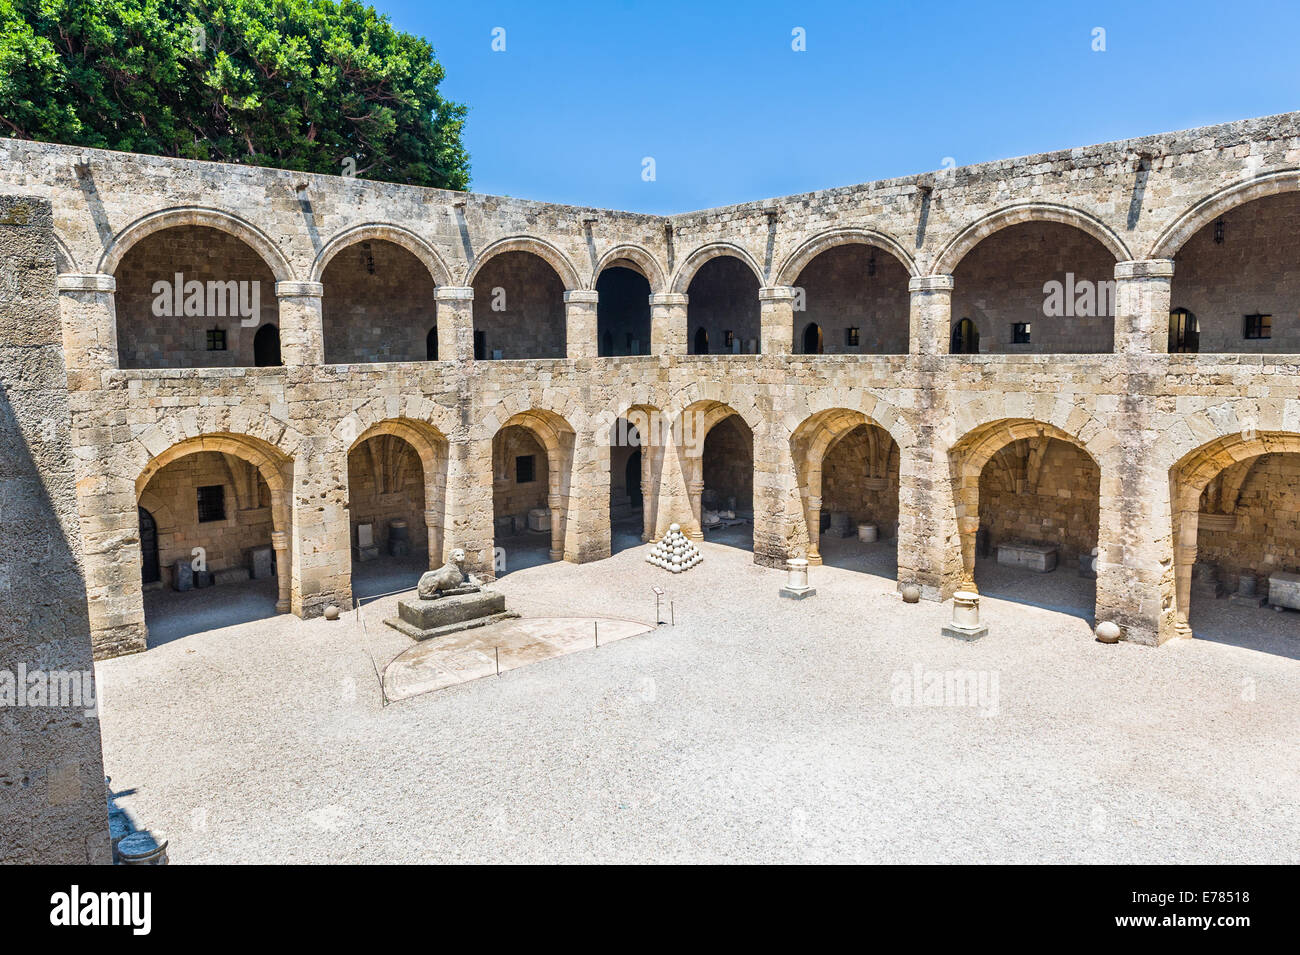 Castle of Templar knights at Rhodes - Stock Image